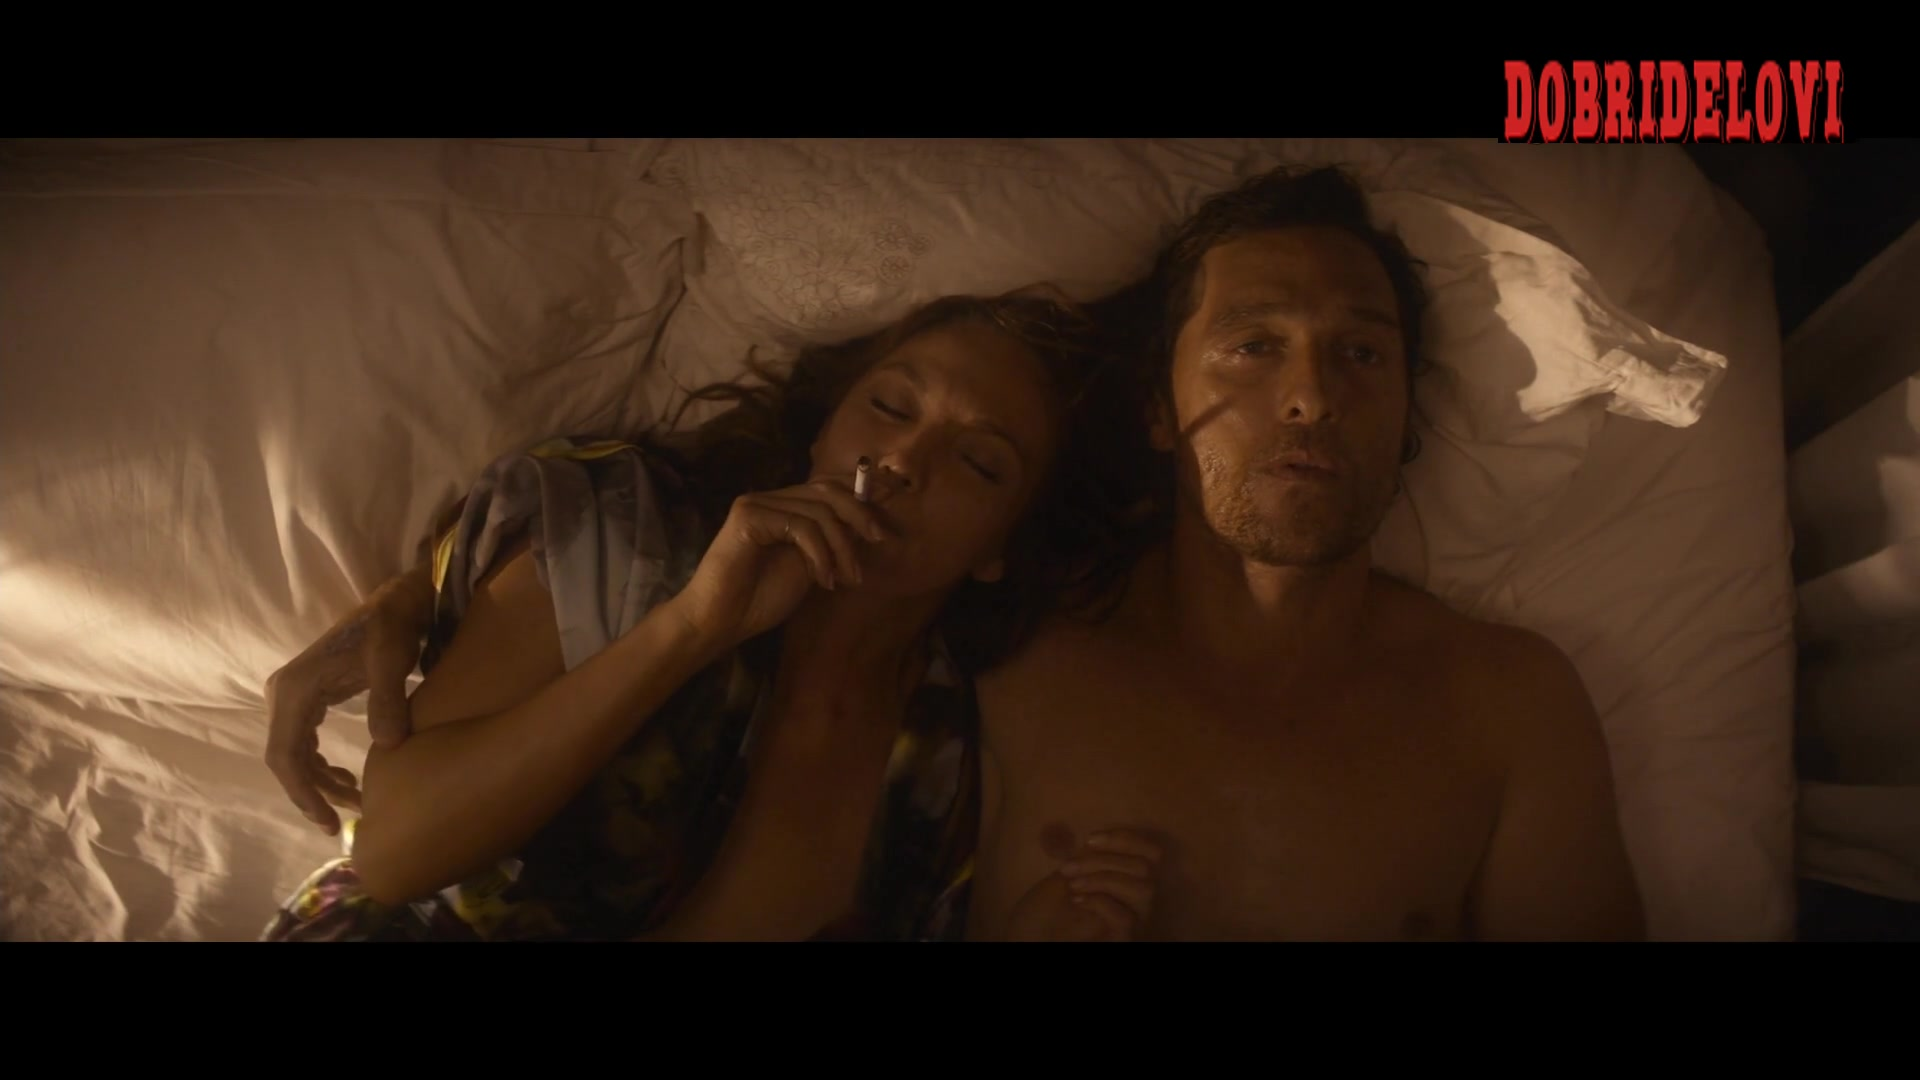 Diane Lane open shirt in bed scene from Serenity